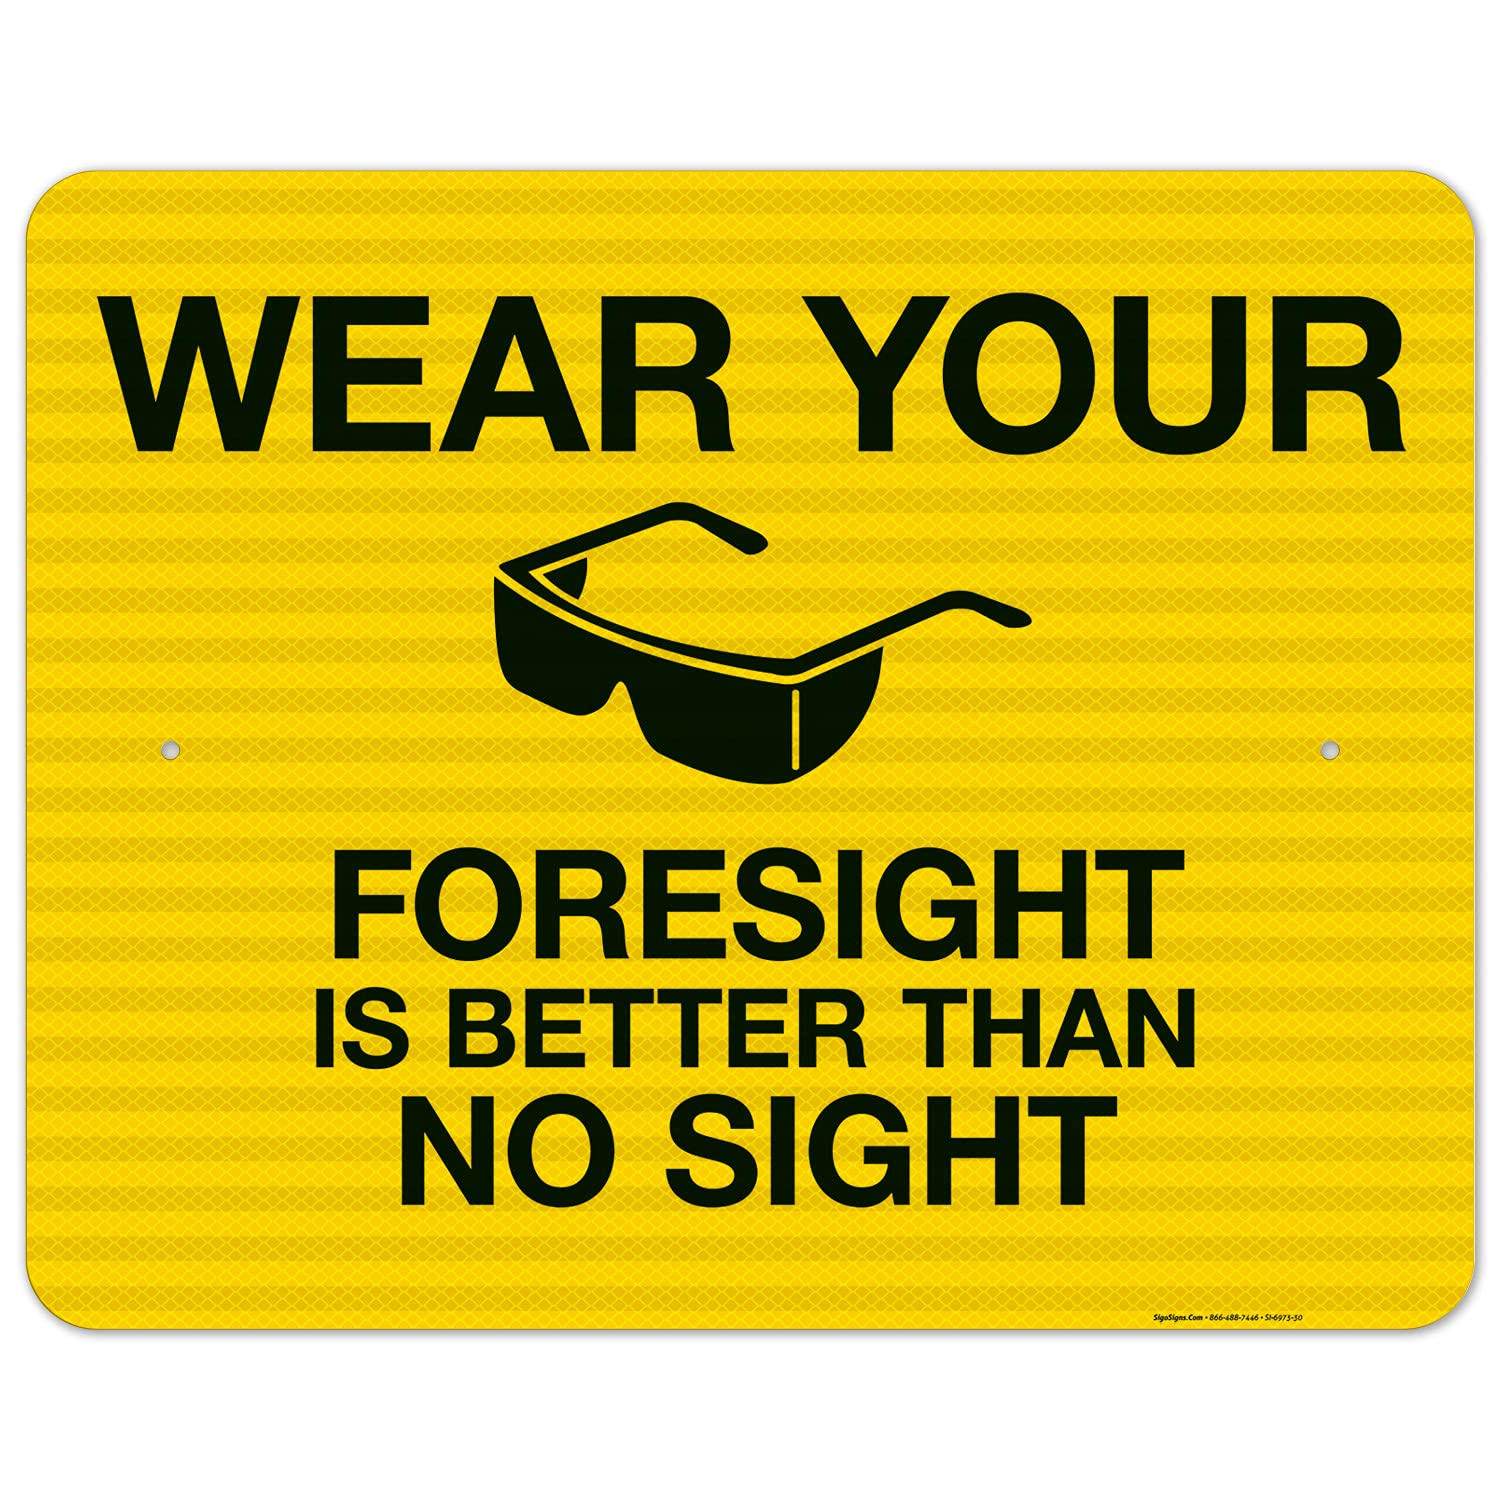 NEW before selling ☆ Caution Wear Your Wholesale Glasses Sign Reflective 24x30 Inches EGP 3M